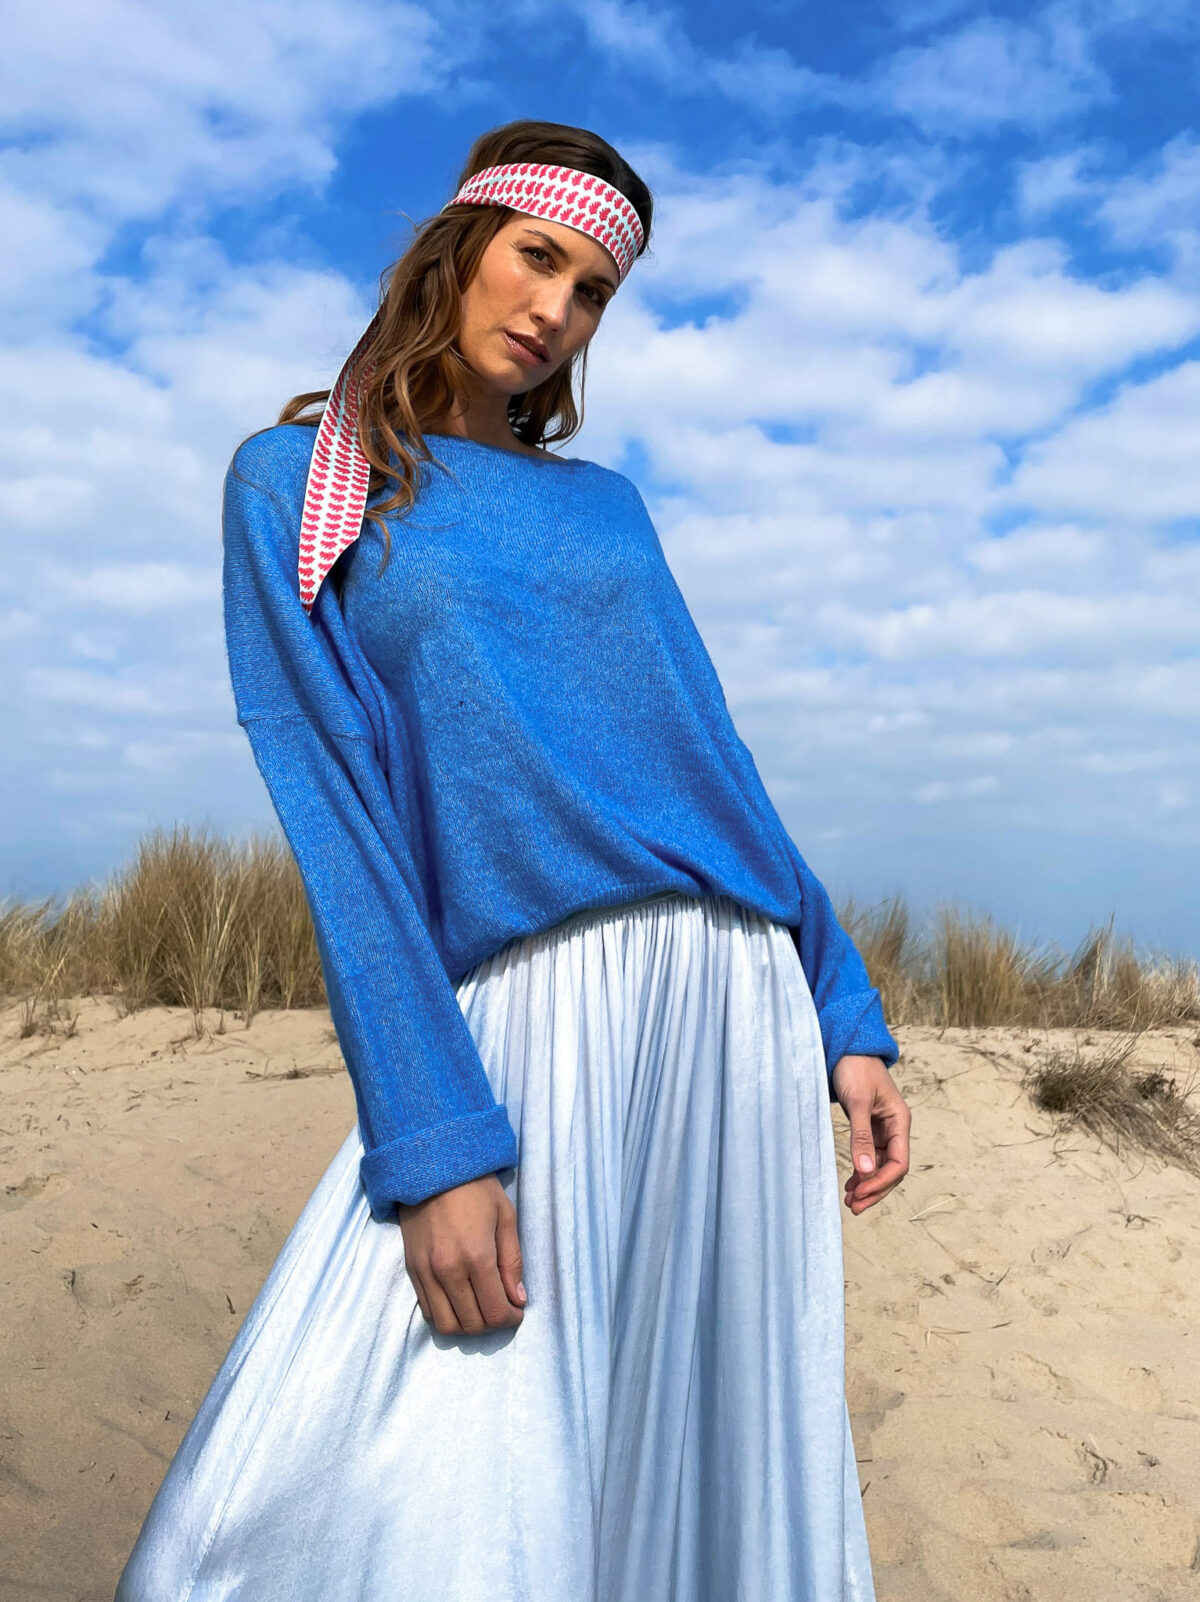 woman with a blue sweater and a blue long skirt on the beach